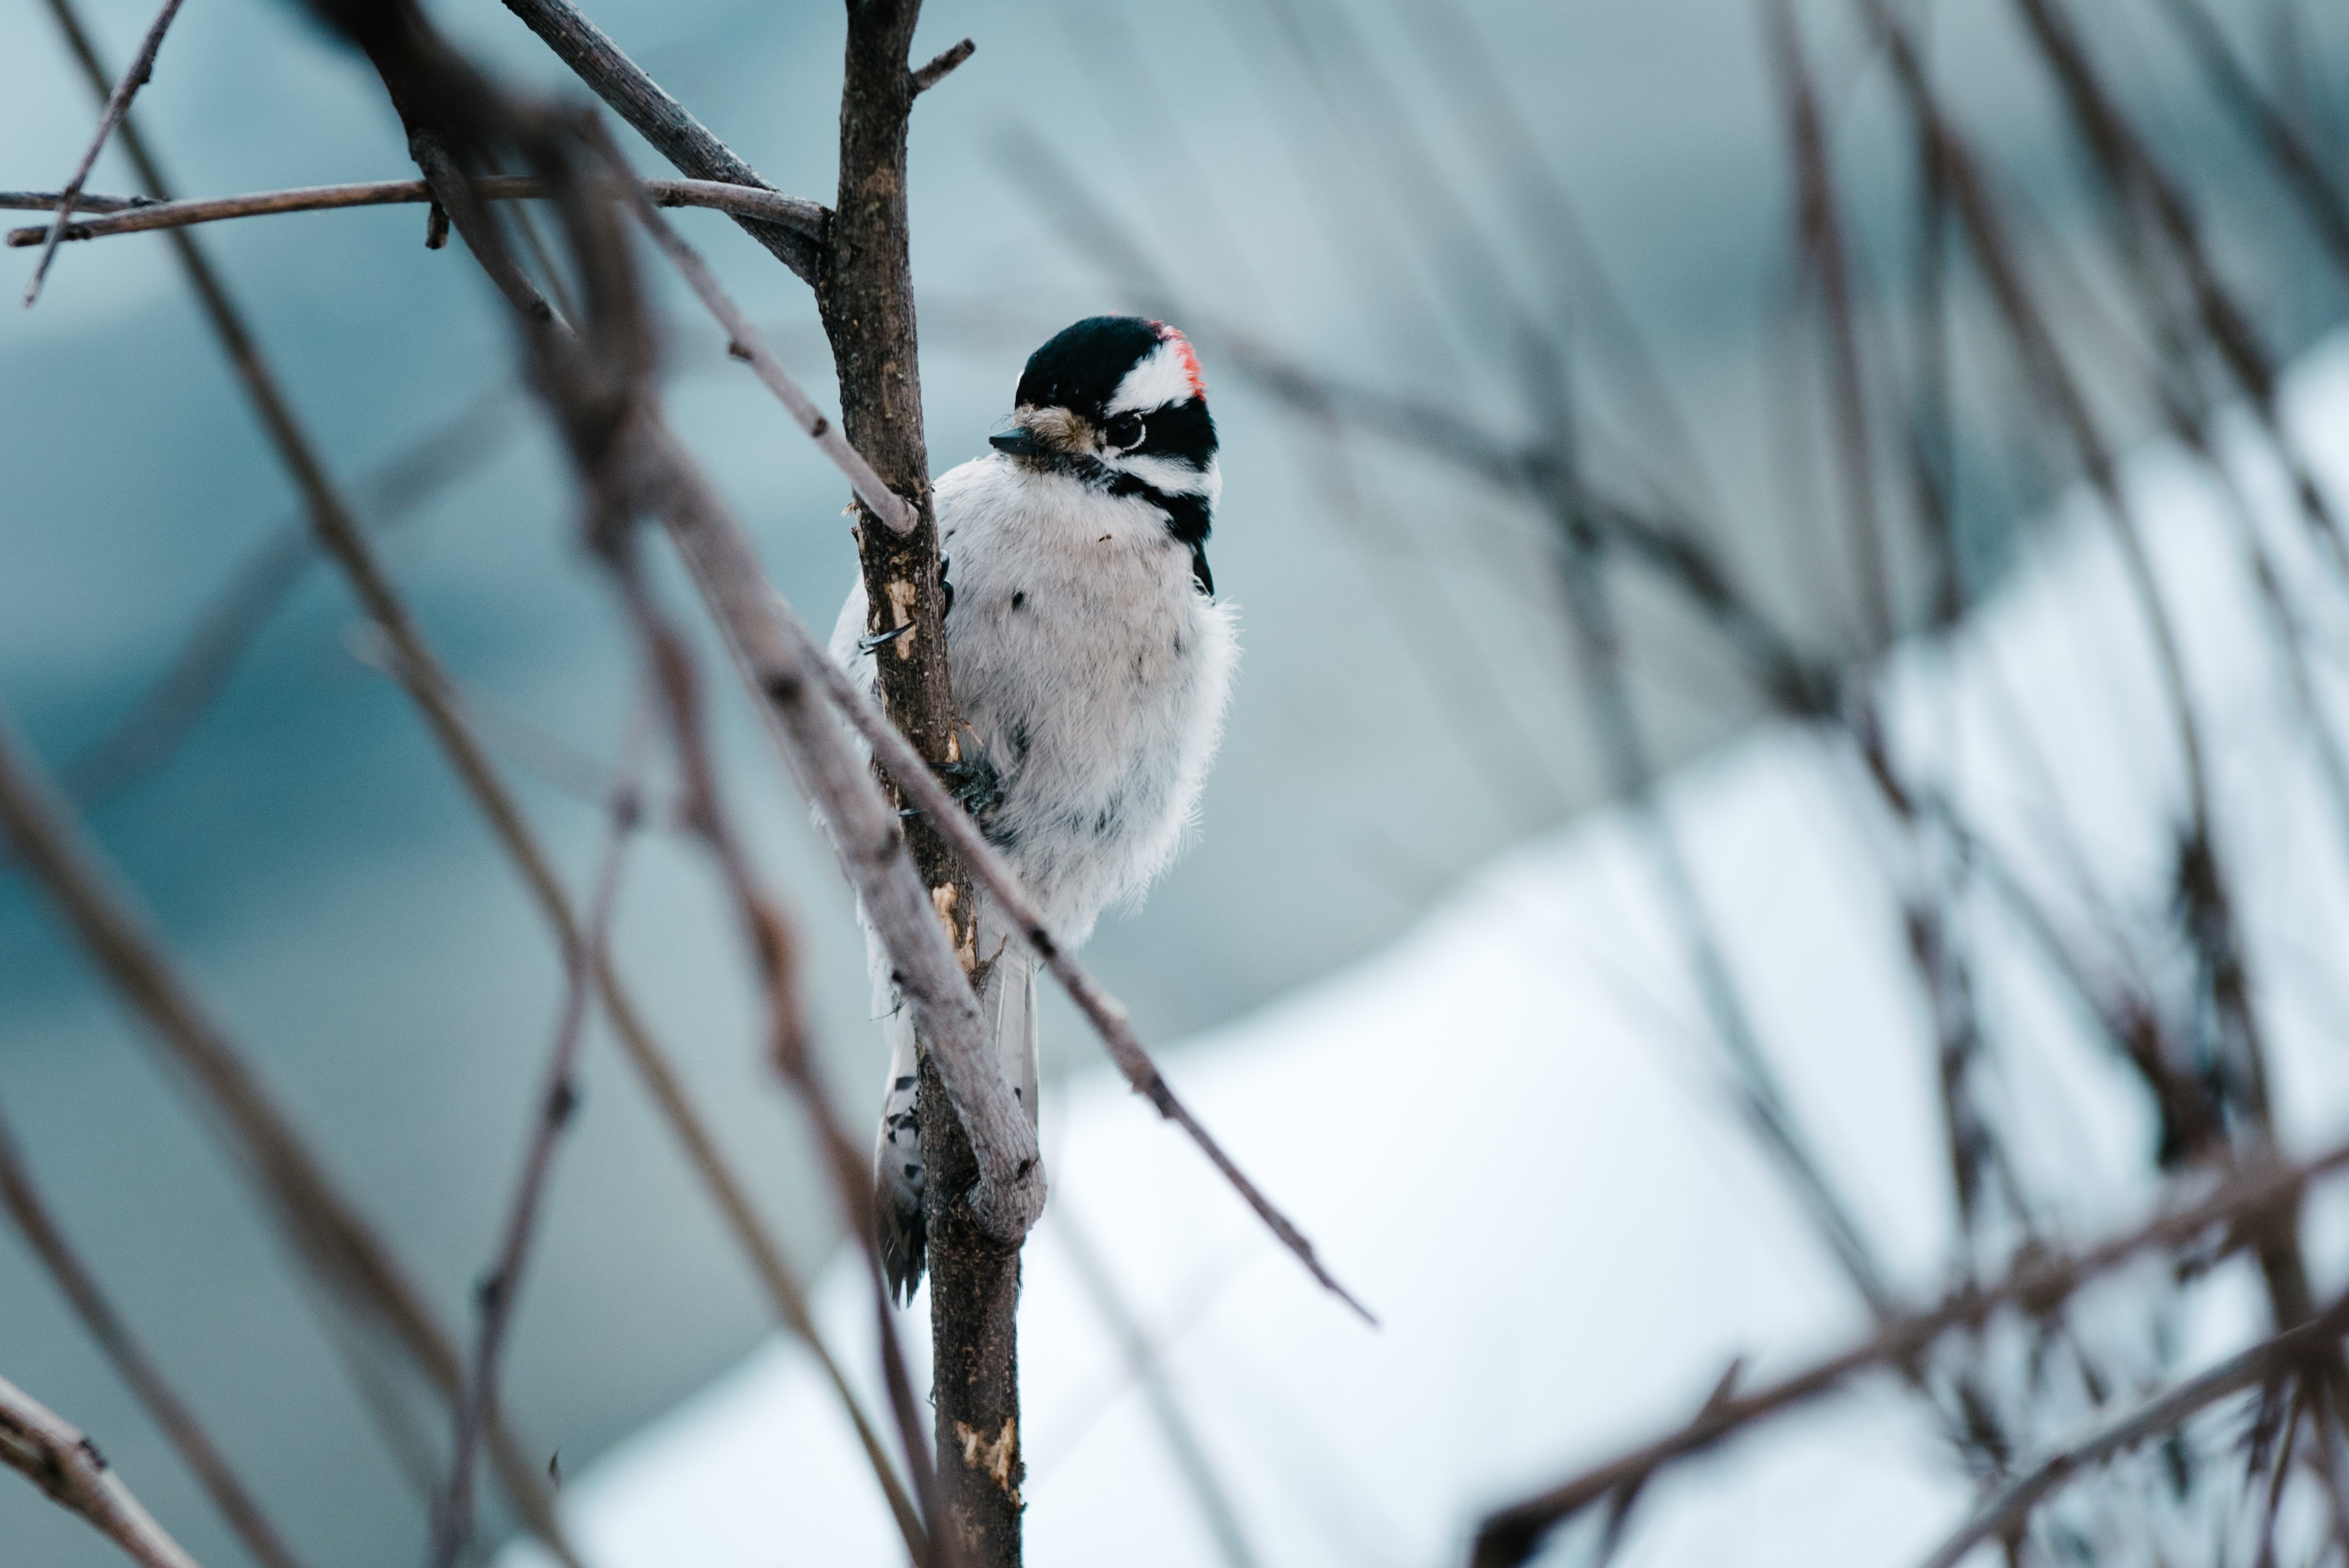 white and black bird on tree branch during daytime